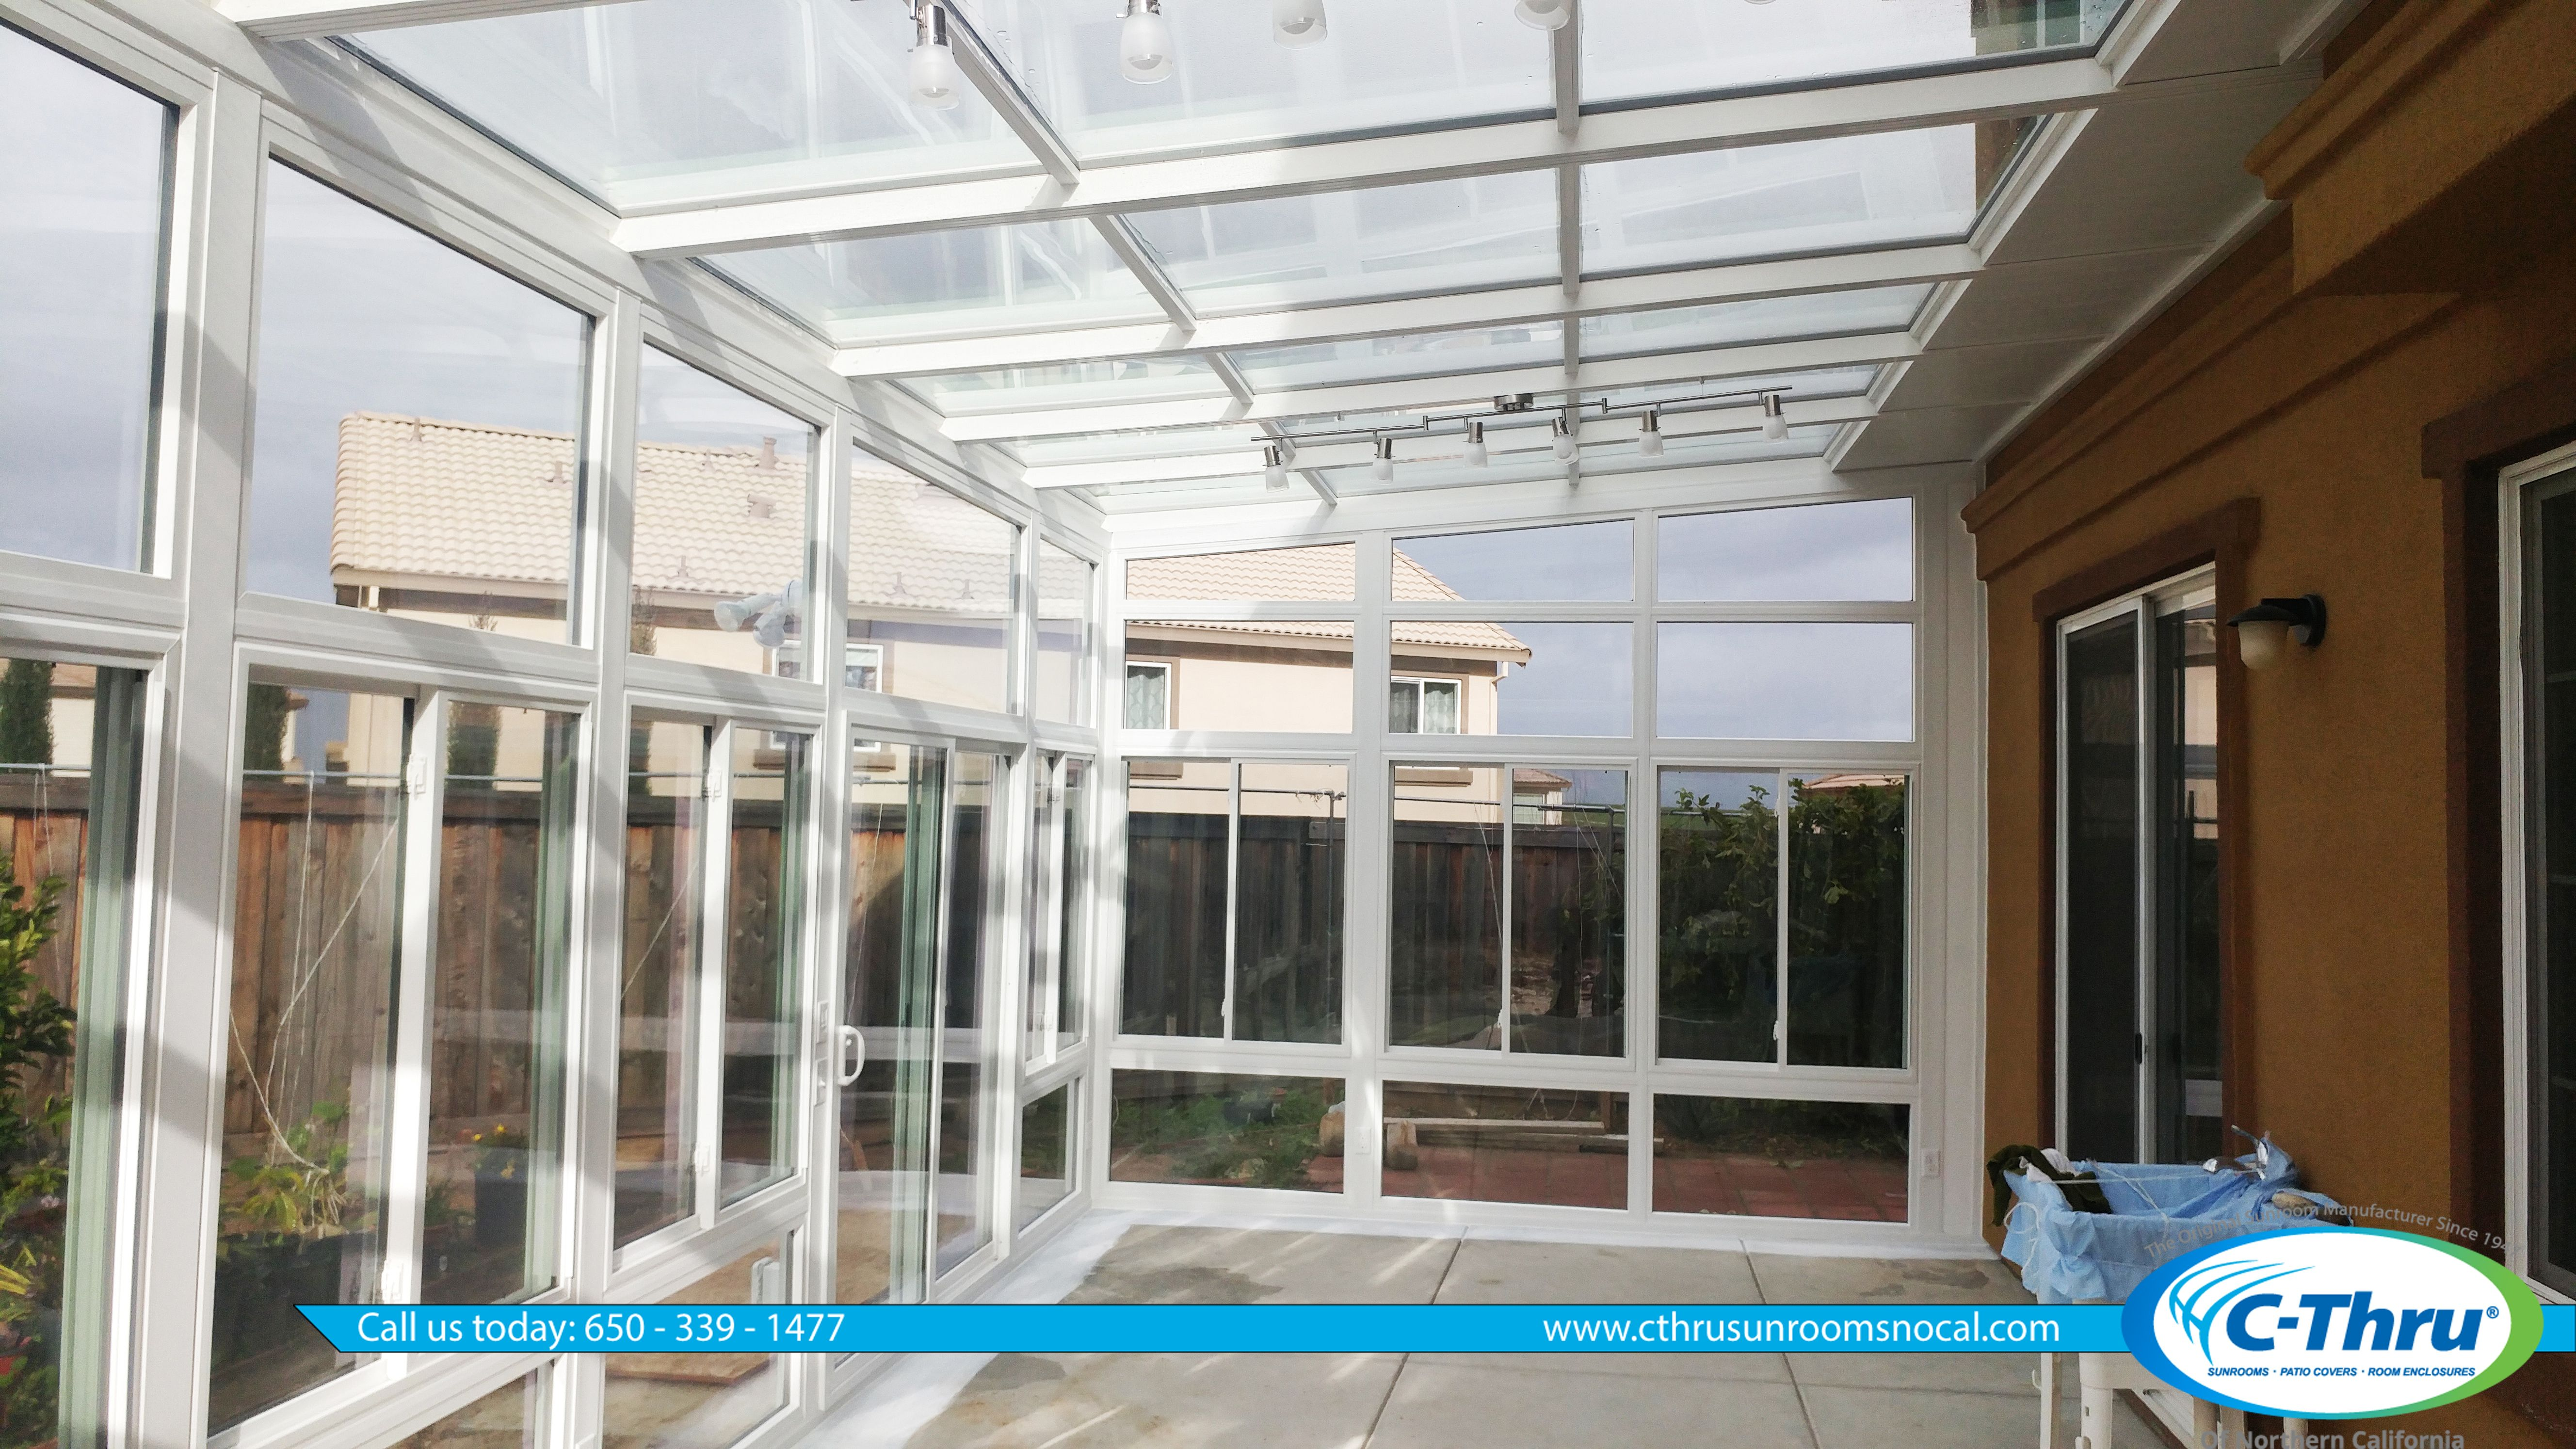 Sunrooms Patio Covers And Screen Systems Sf Bay Area Free Quotes P 1 650 339 1477 Cthrusunroomsnocal Patiocoversgalore